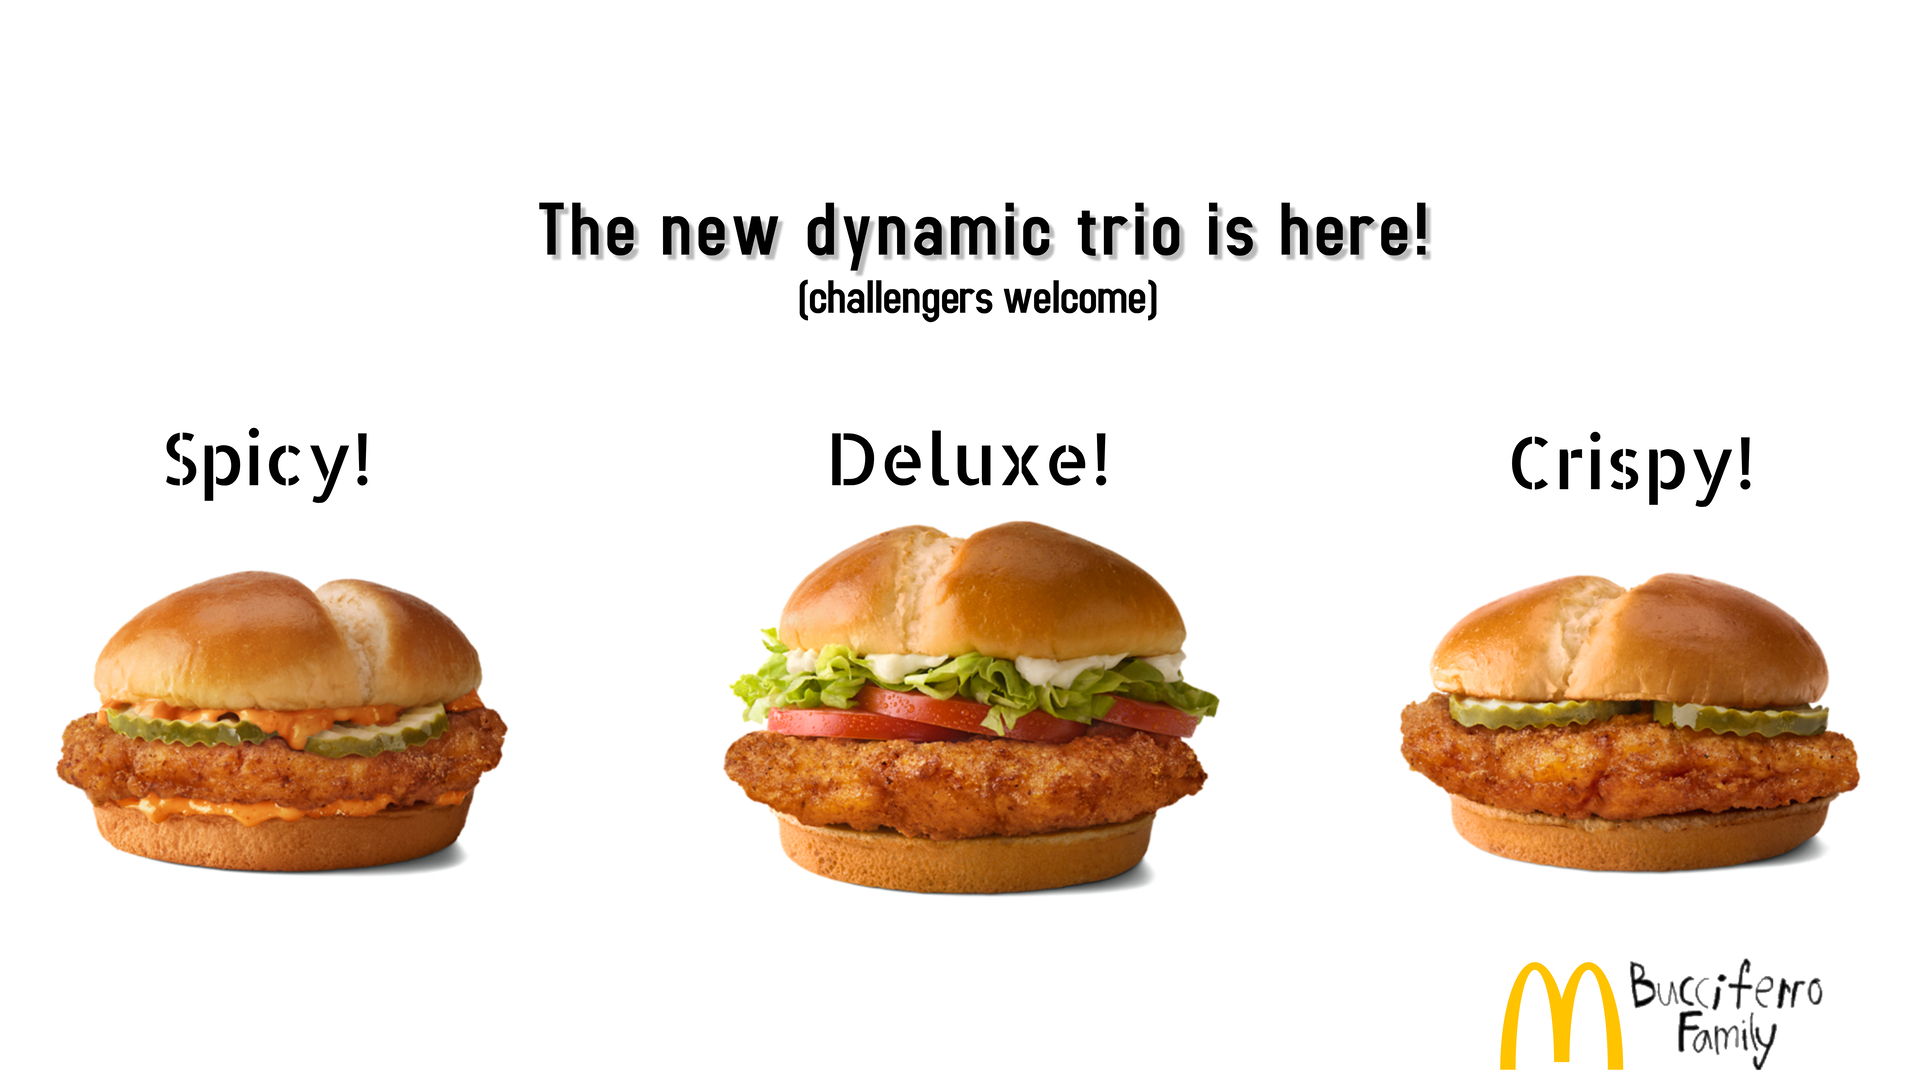 3 Mind blowing new Chicken Sandwiches, try them all!